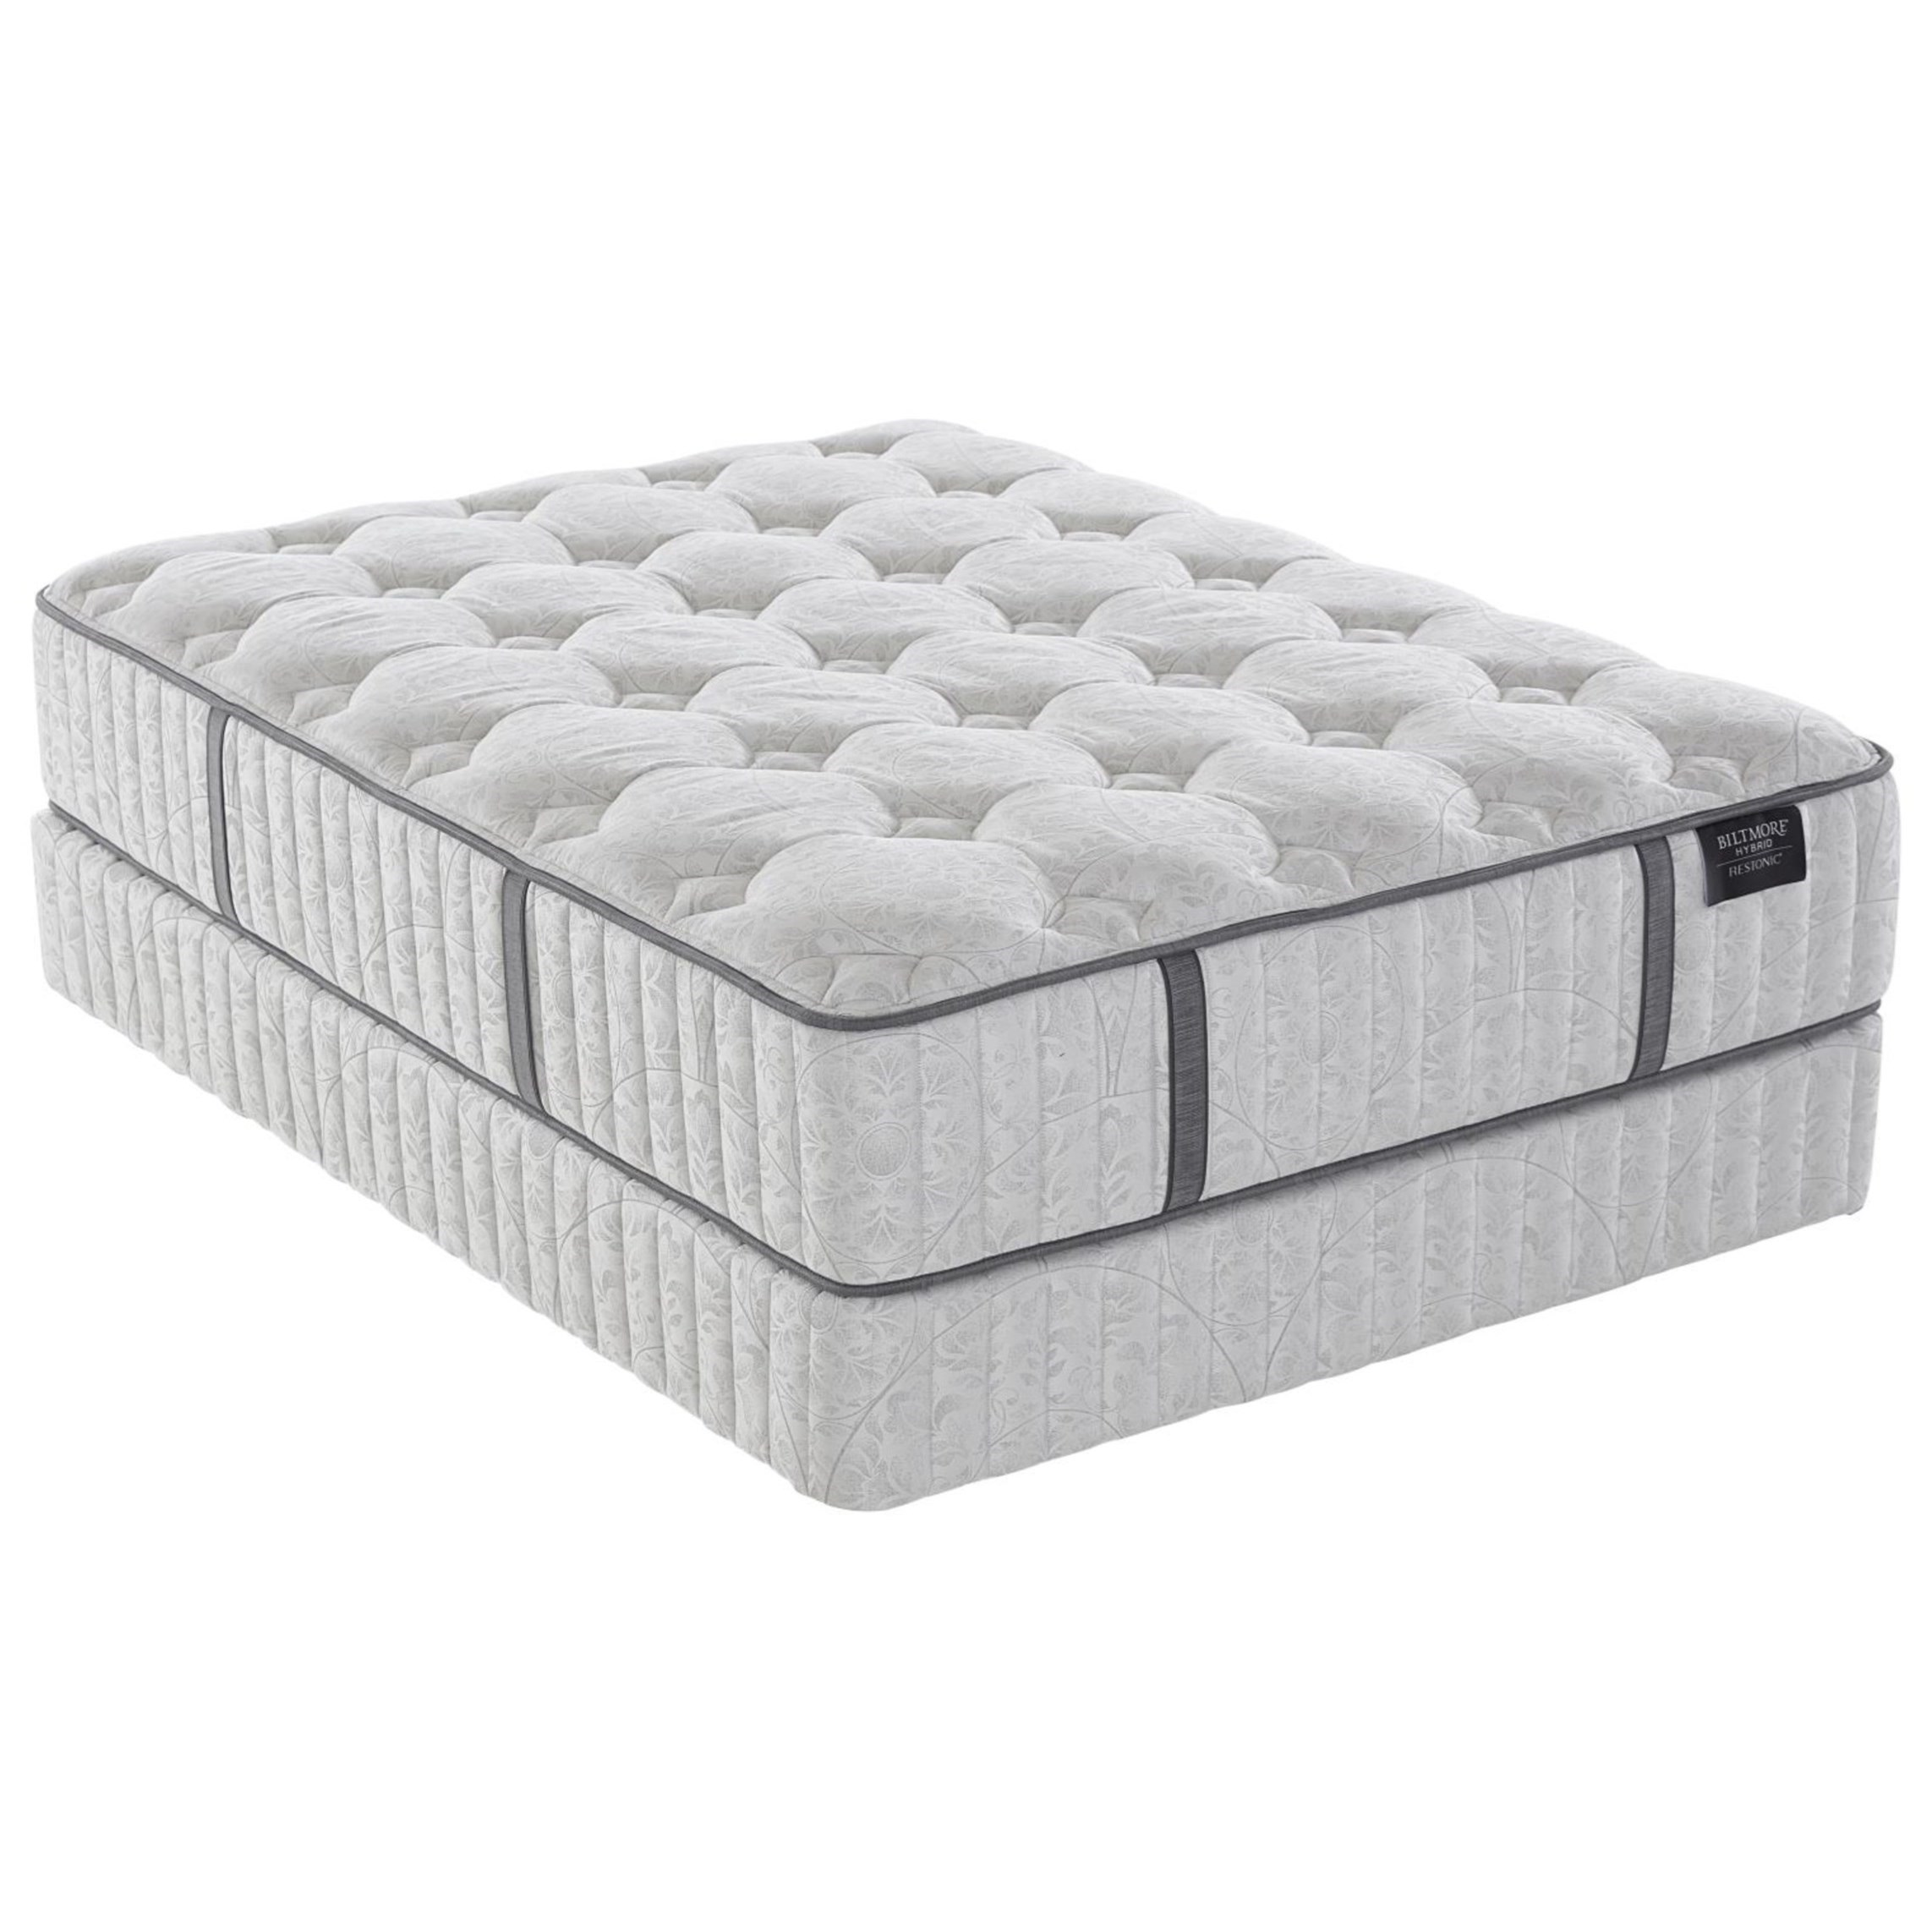 "Biltmore Reserve Hybrid Belle Twin XL 14"" Plush Hybrid Mattress Set by Restonic at Rotmans"